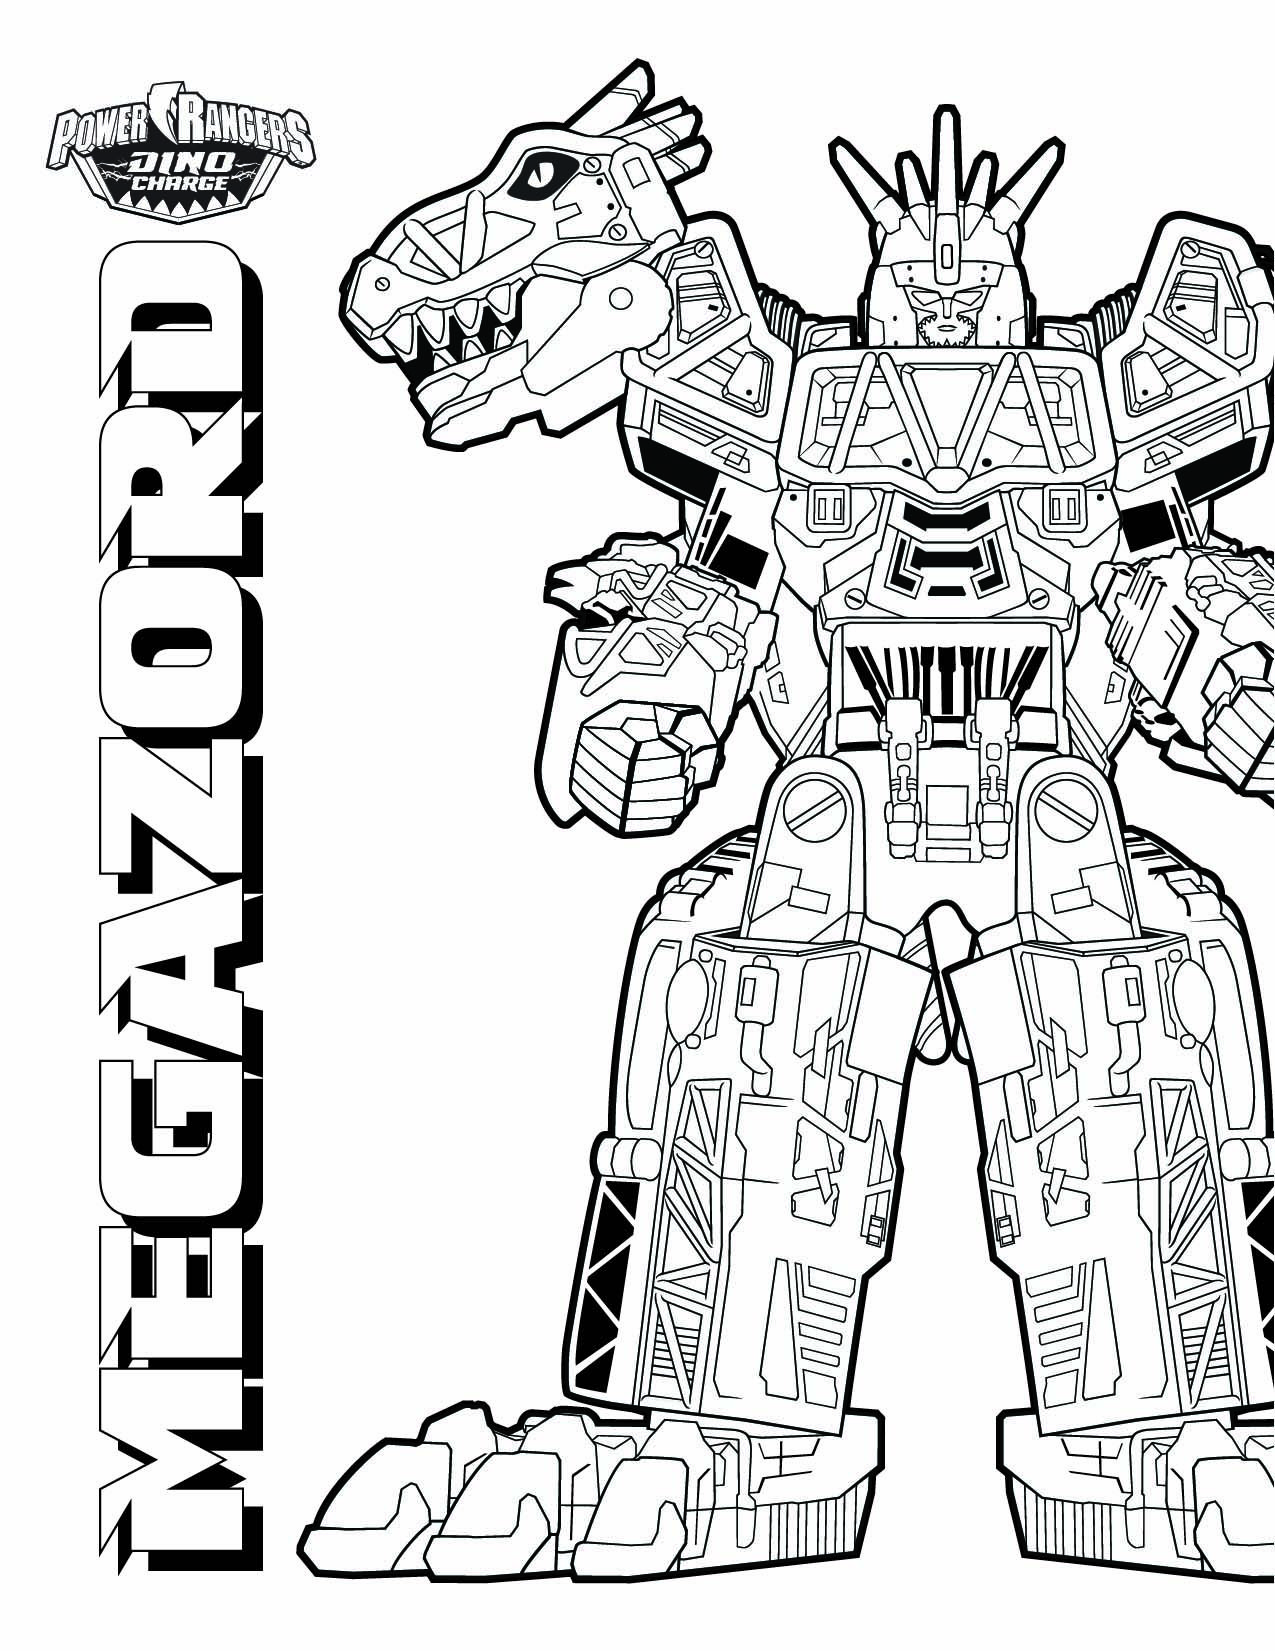 Megazord | C in 2019 | Power rangers coloring pages, Power ranger ...